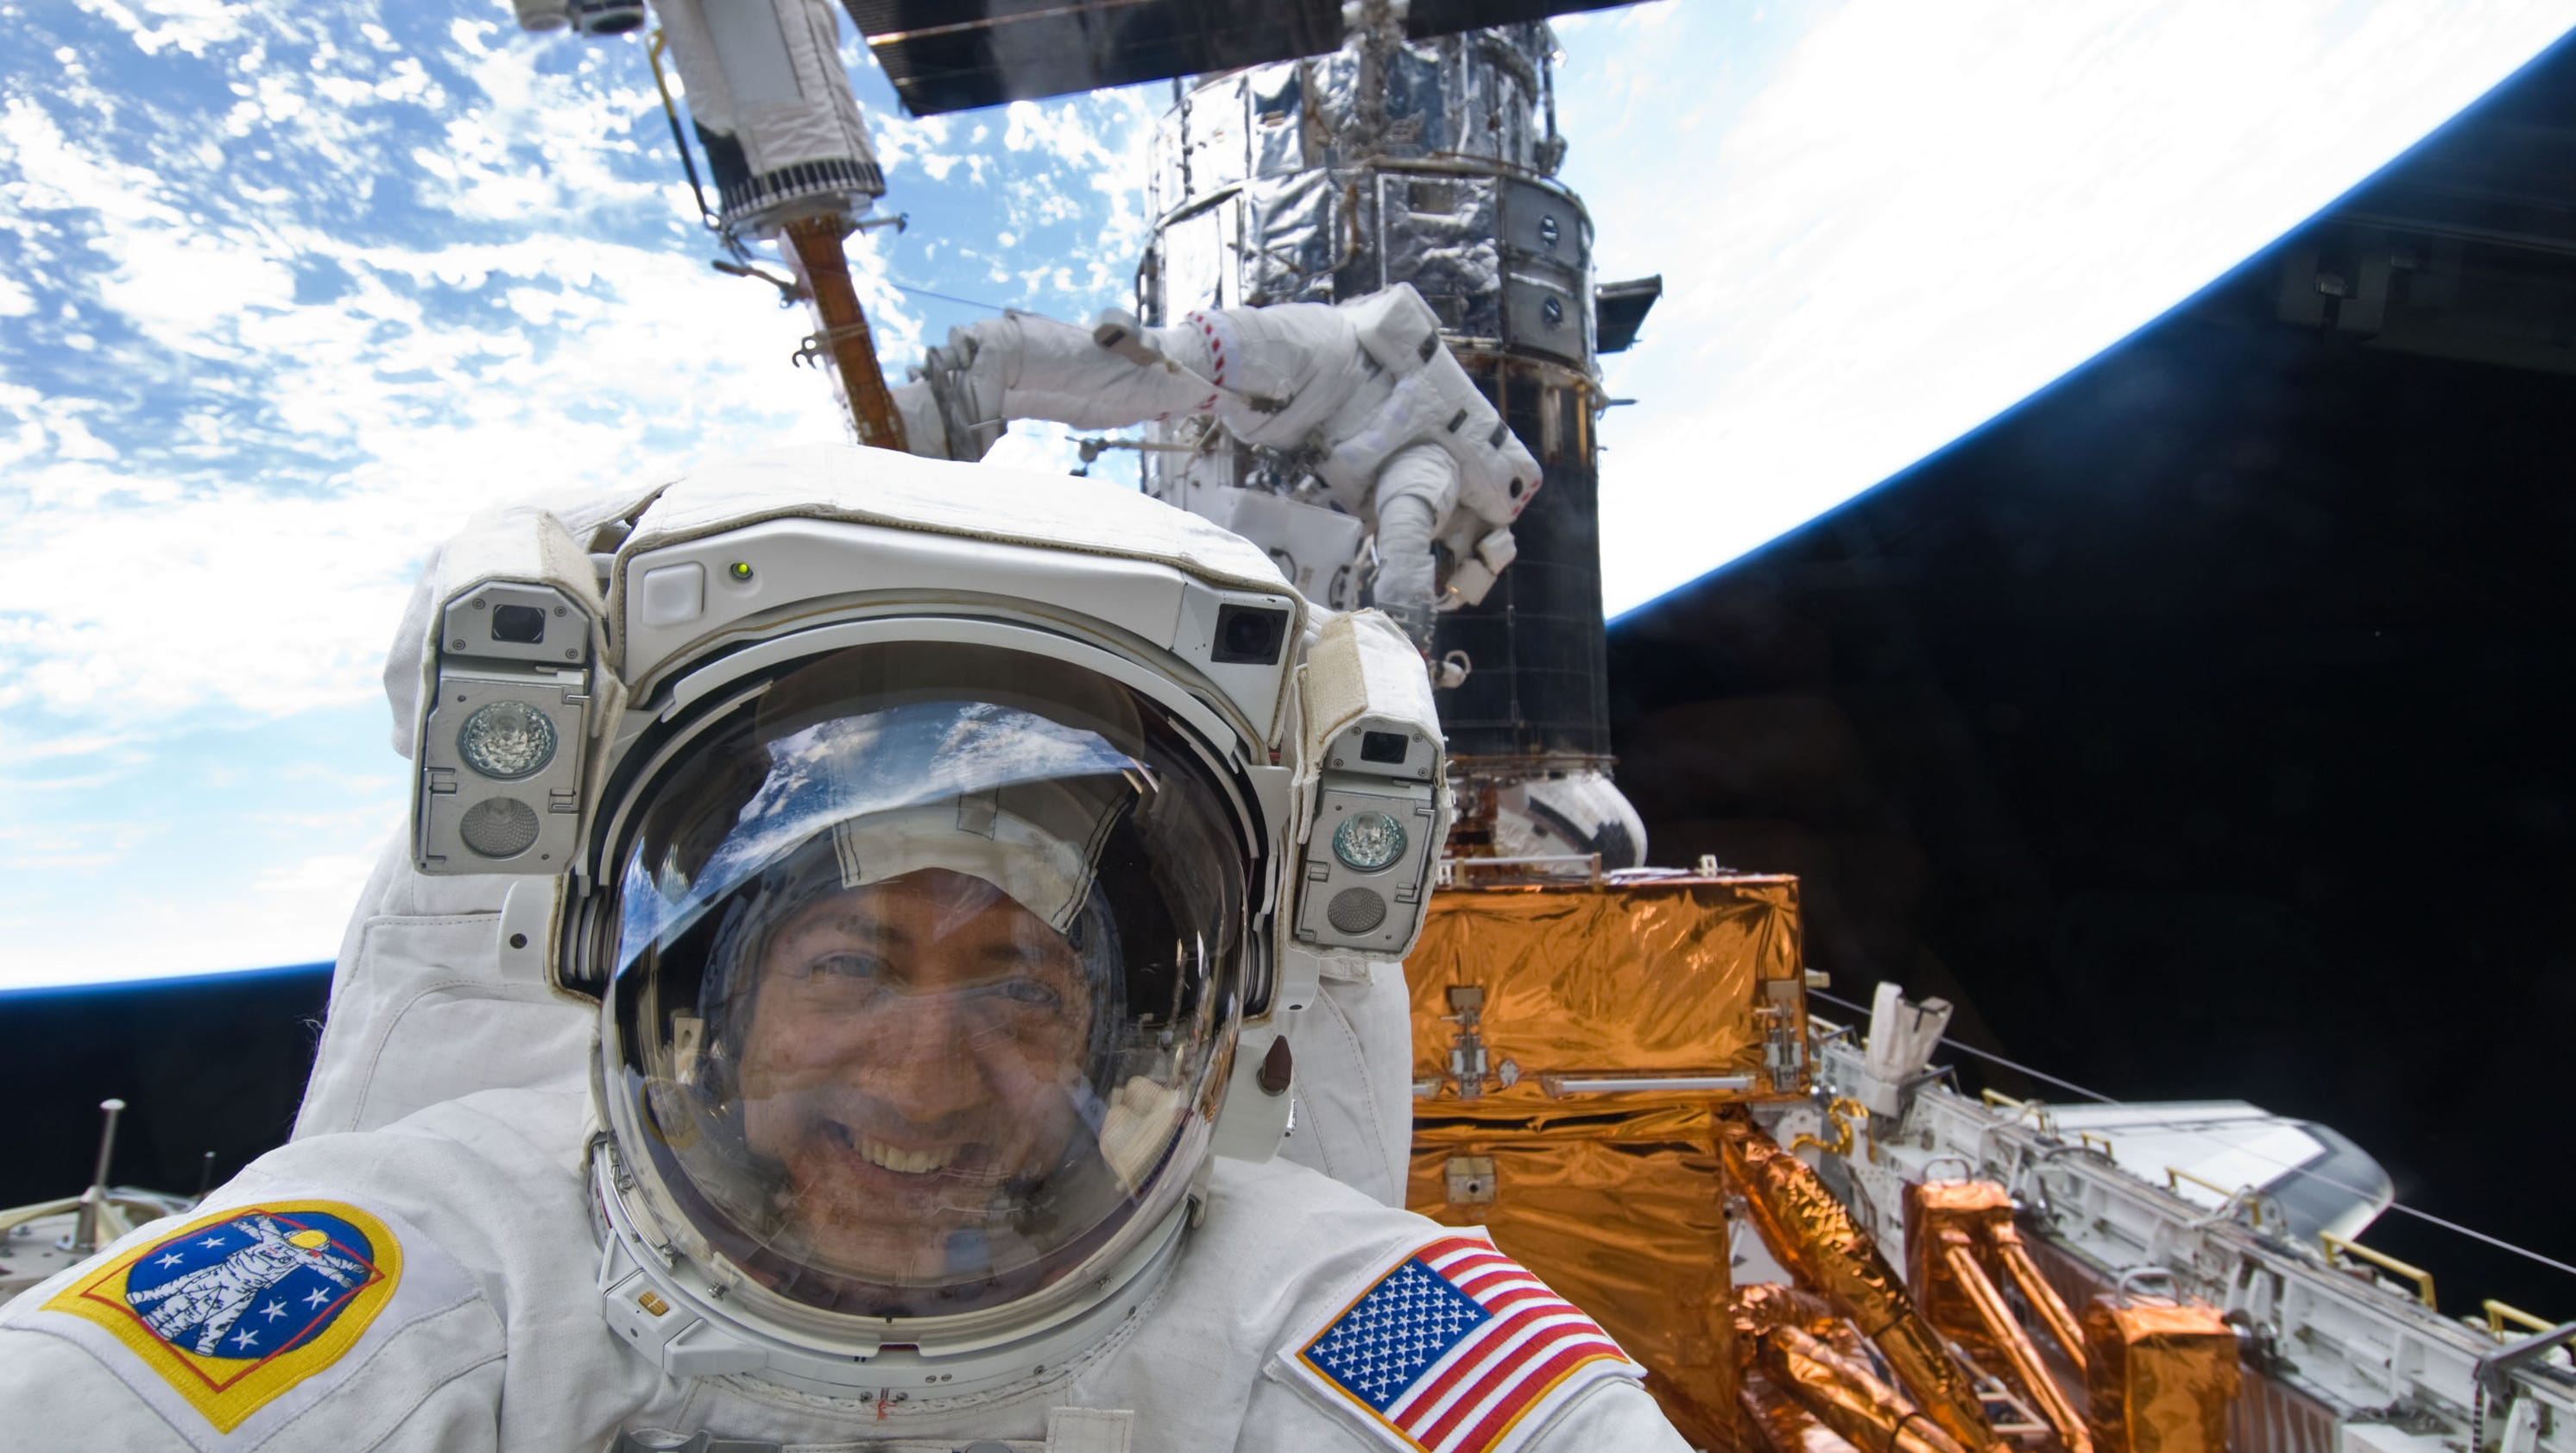 astronauts in space experience - photo #43